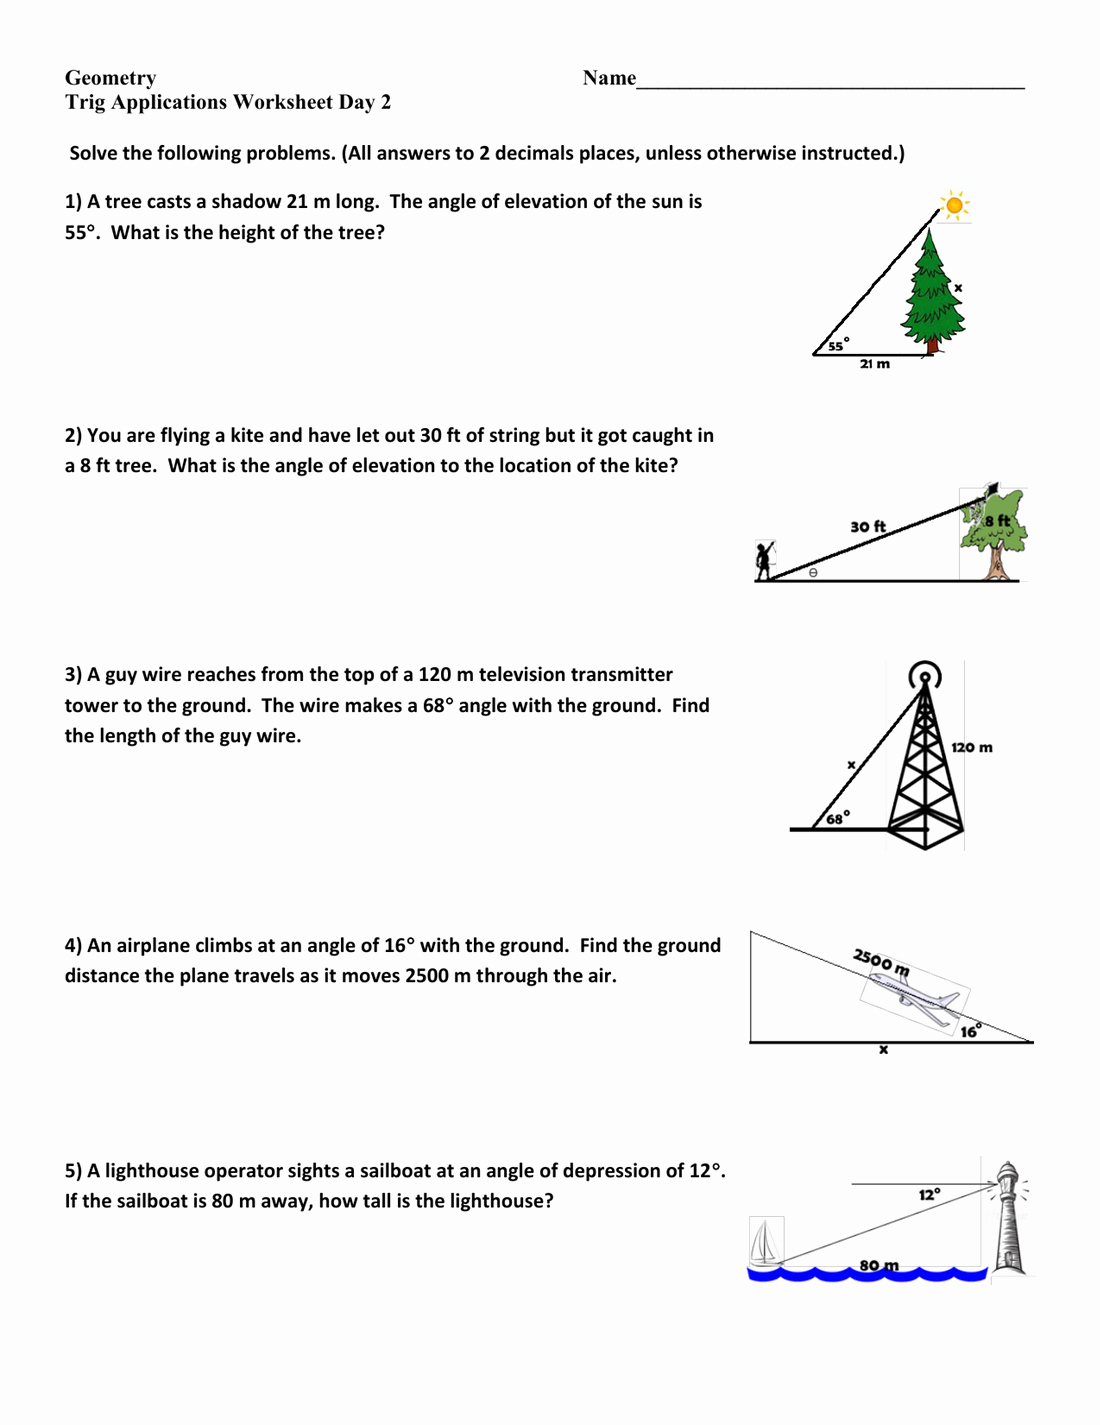 Right Triangle Trig Worksheet Answers Luxury Trigonometry Triangles Mechanical Electrical Wiringelc